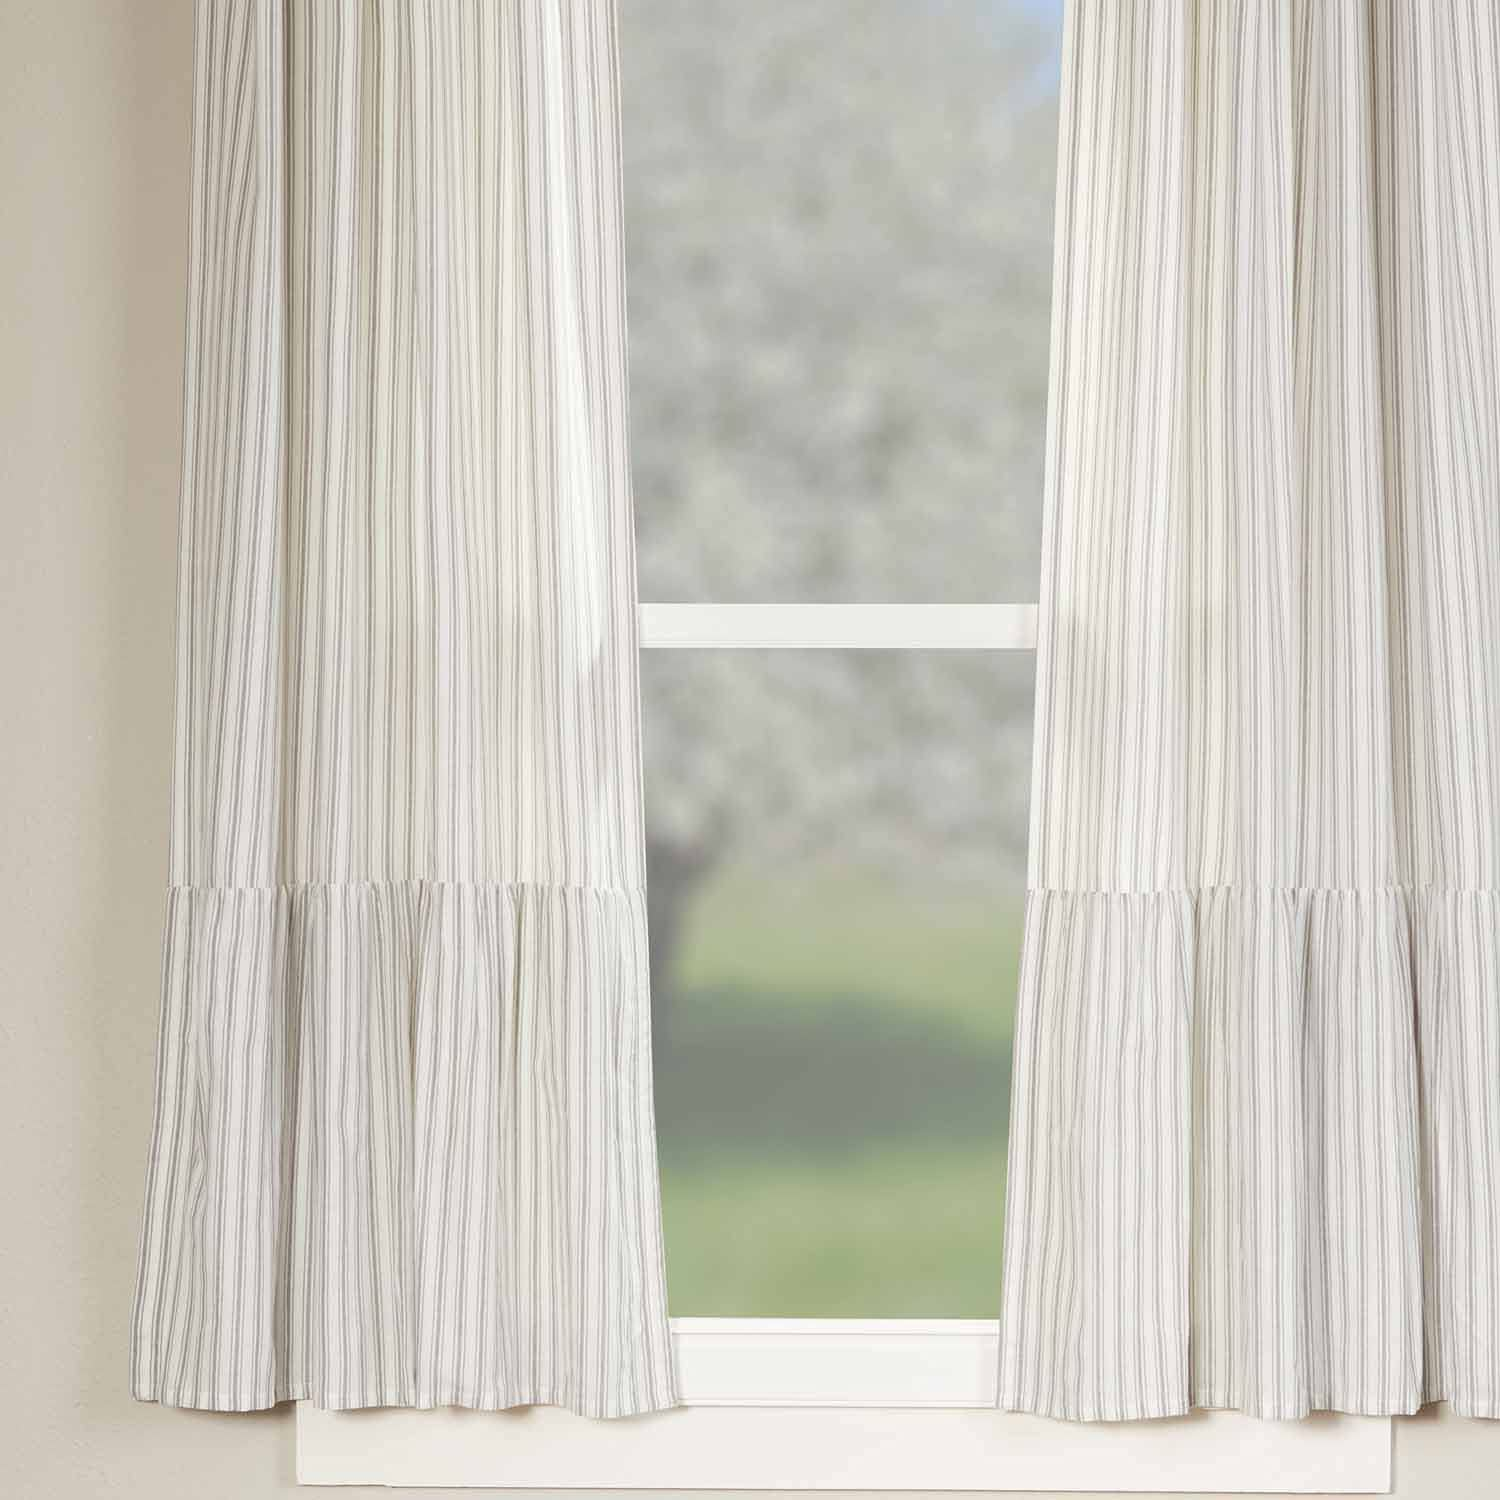 Timeless Ticking Ruffled Panel Curtains, Set of 2, 63